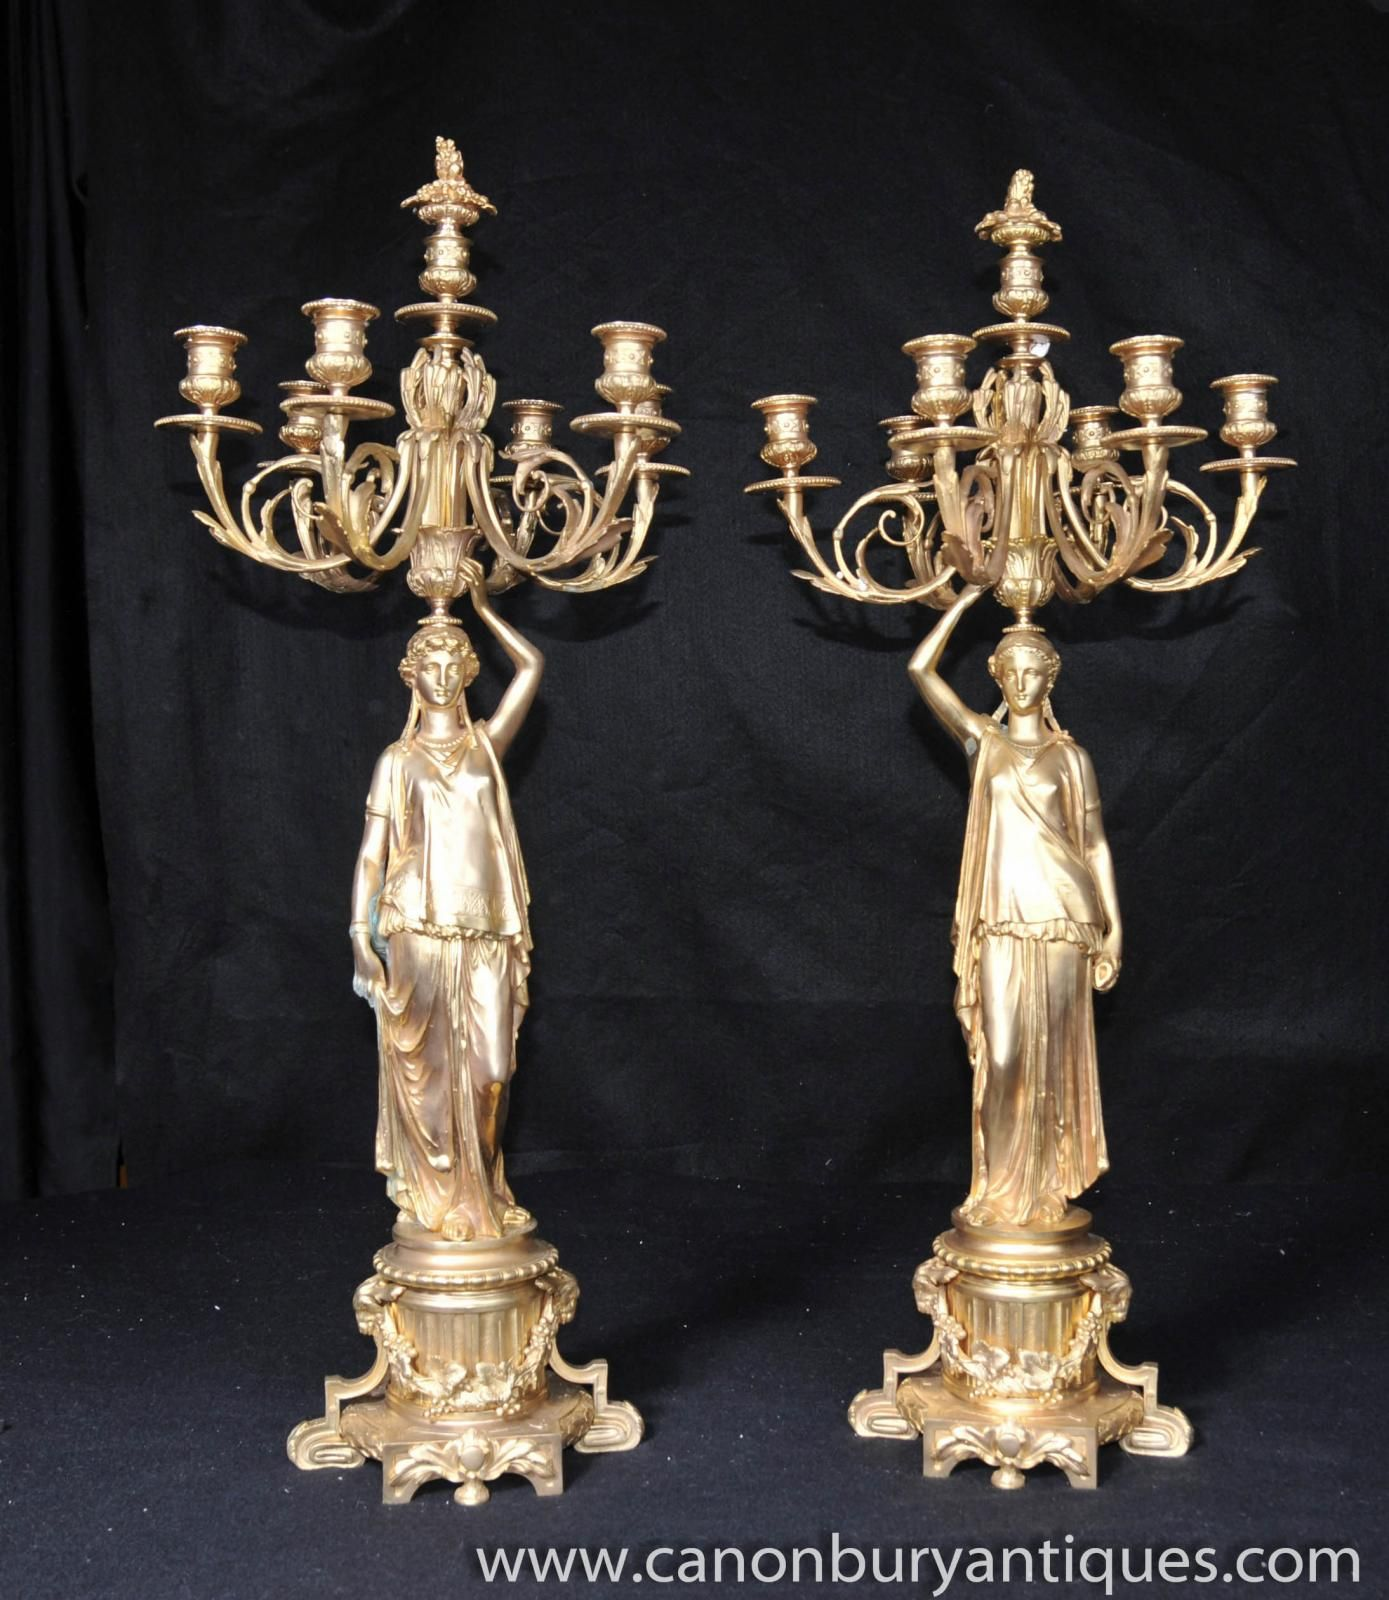 Photo of Pair French Empire Ormolu Figurine Candelabras Candles